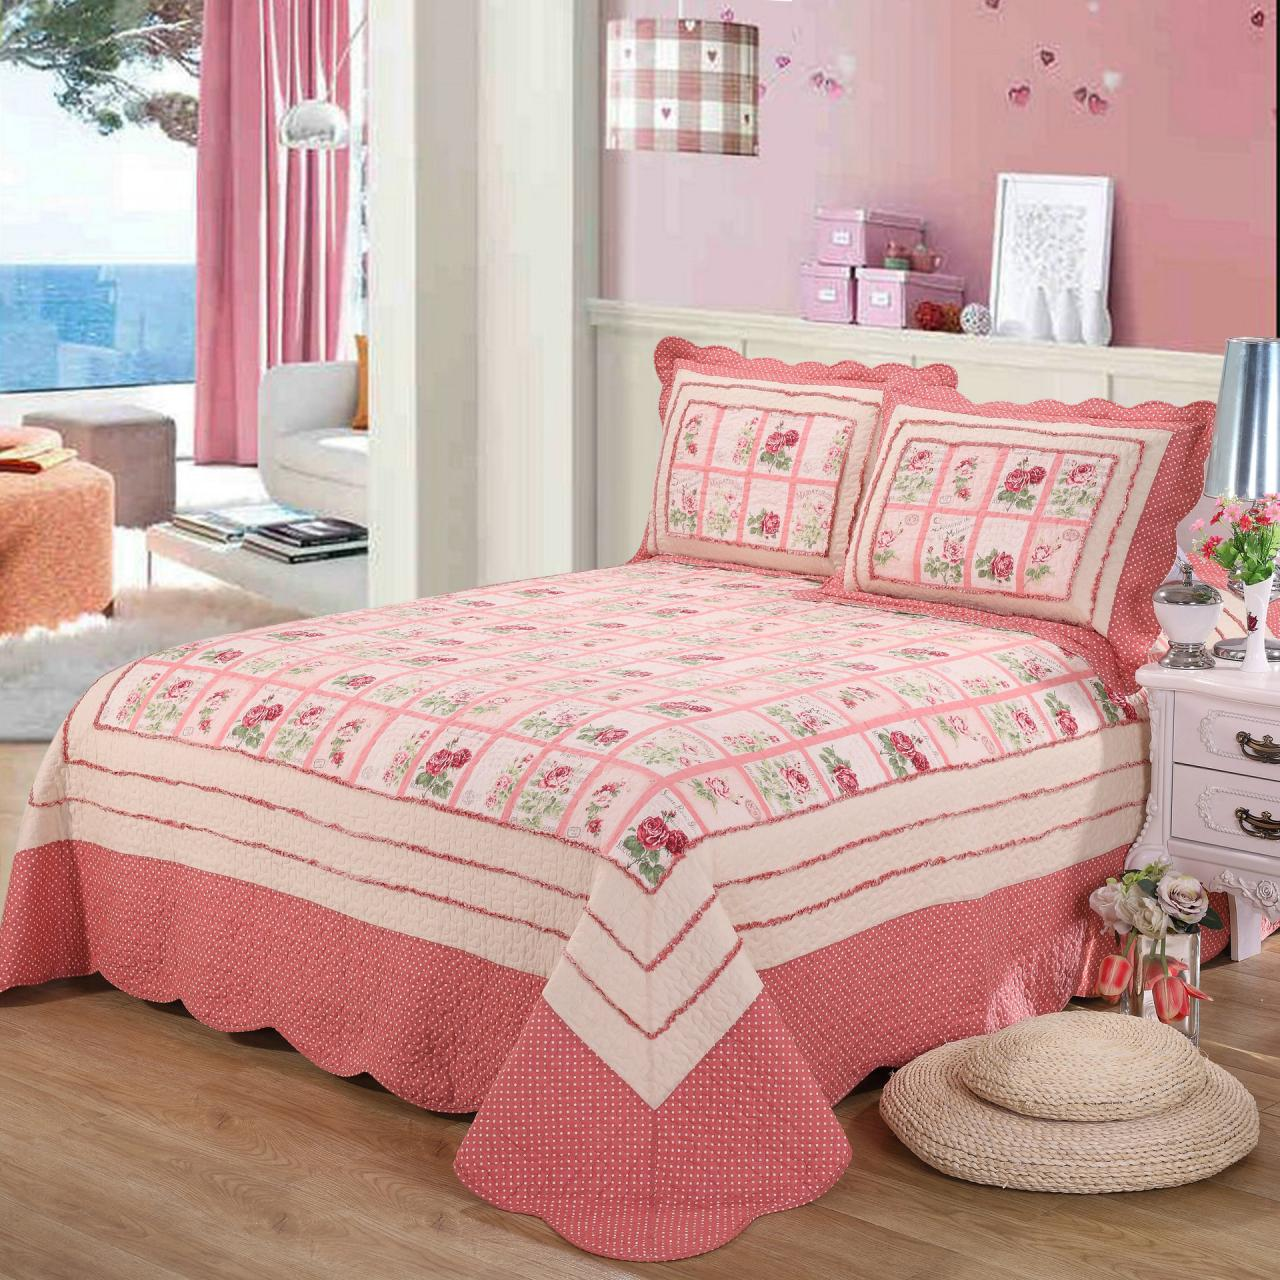 Three-Piece Cotton Bedding Set Quilted Quilt Bed cover